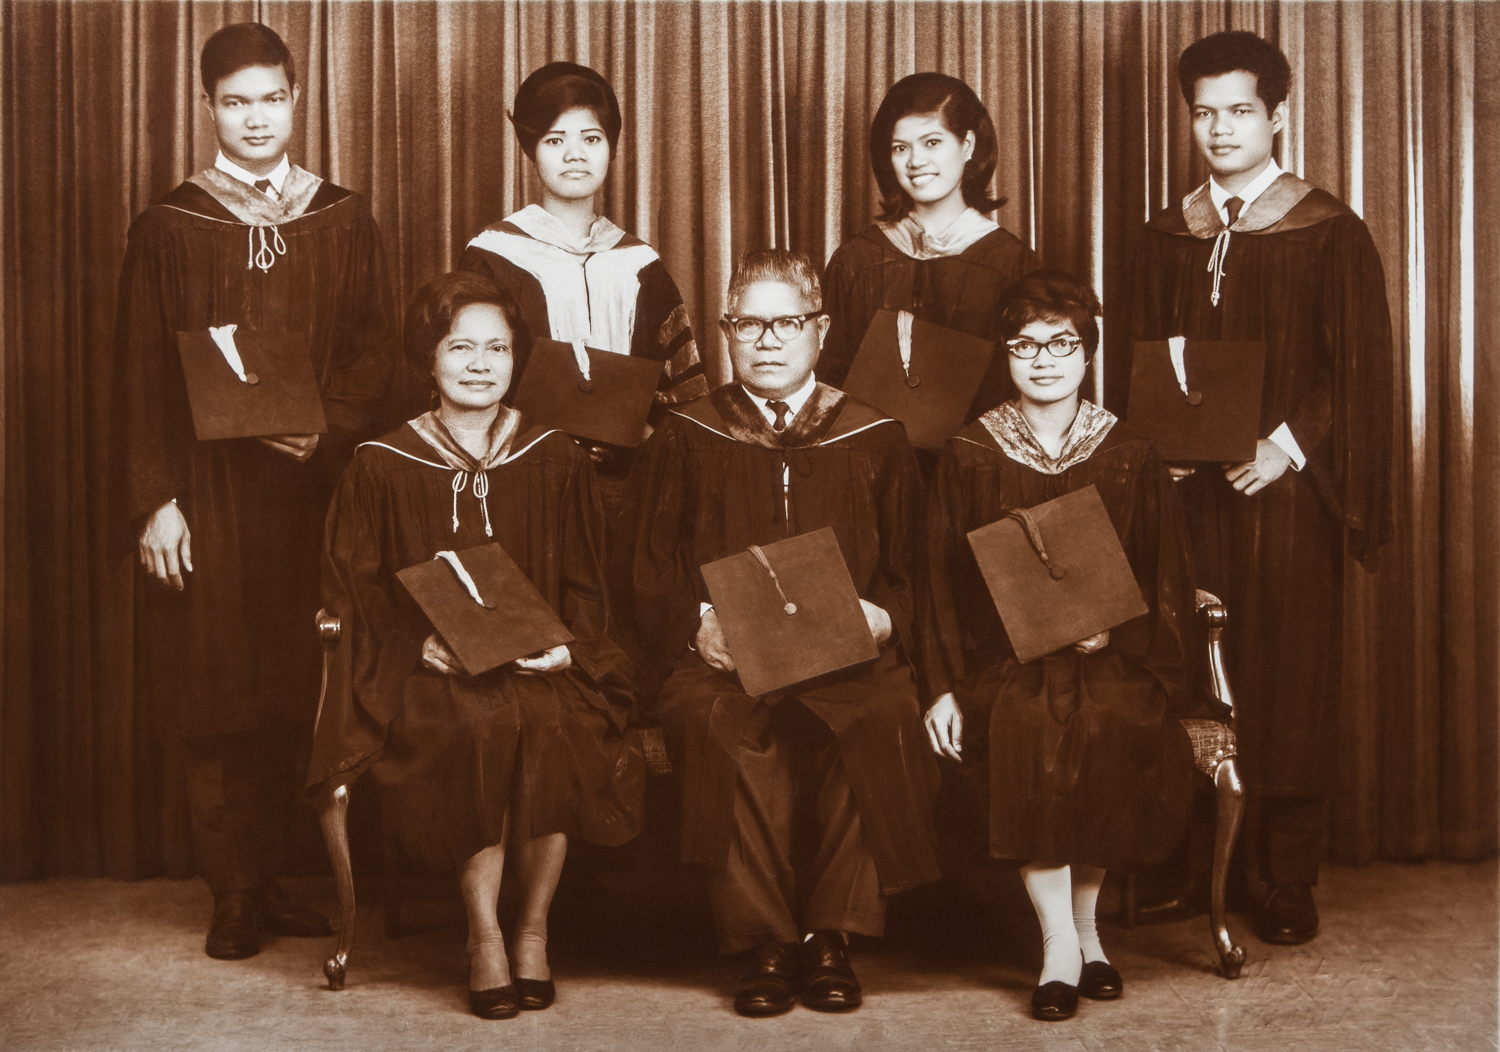 This digital image file is a fully restored studio portrait from a sepia-toned silver gelatin print showing the family of my maternal grandparents in their graduation attire. This photograph was taken on December 25, 1968 at the legendary Rialto Studio in Escolta, Manila (Philippines). From left to right, standing: Judge Isauro Balderian; Dr. Melania B. Domingo; Delia B. Pestaño, RPh; Engr. Ludovico Balderian; Seated: Mrs. Imelda M. Balderian, M.A.Ed, Atty. Cornelio Balderian, Erlinda B. Guevarra, J.D.